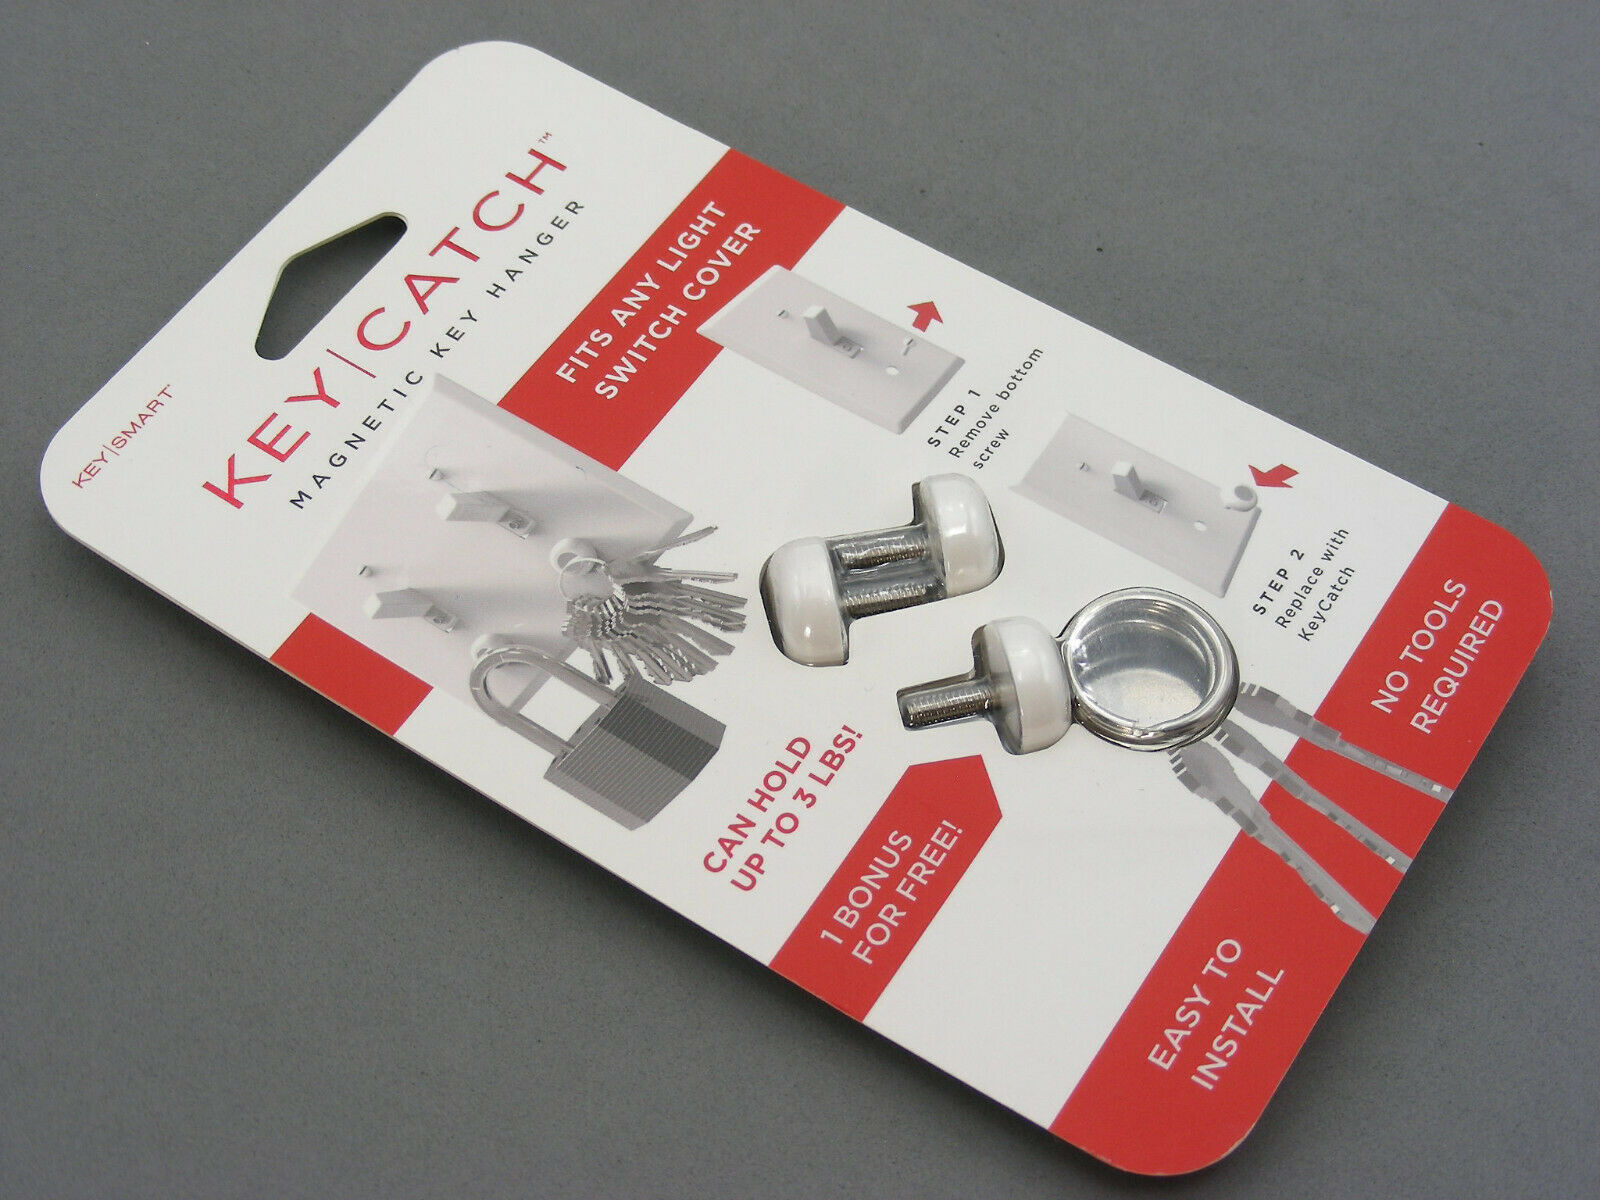 Magnetic Key Smart Hanger Pack of 3 Key Catch FREE SHIP Screw into switch plate